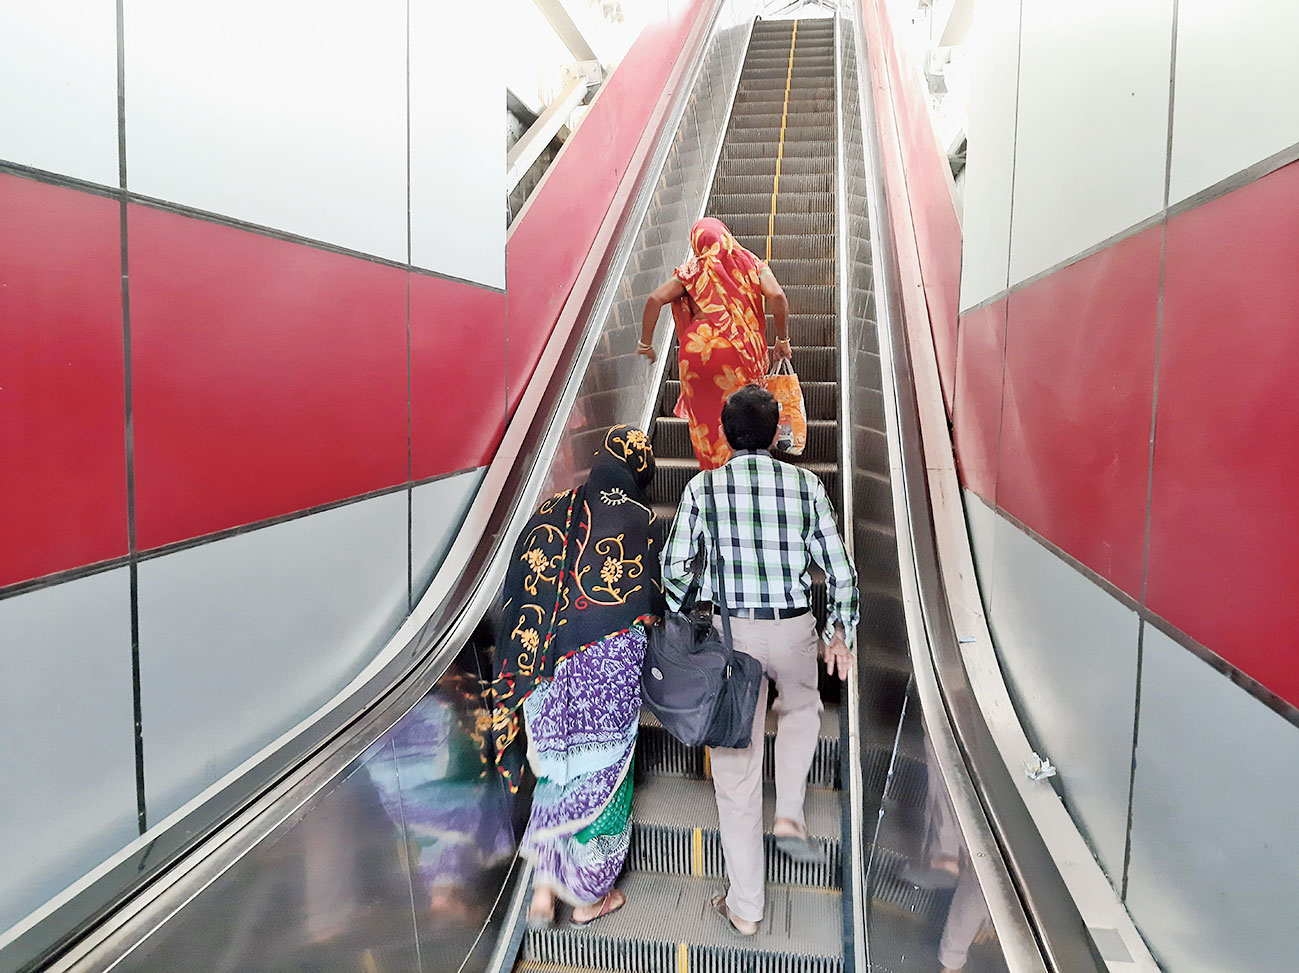 One of the non-functional escalators at Bolpur station.